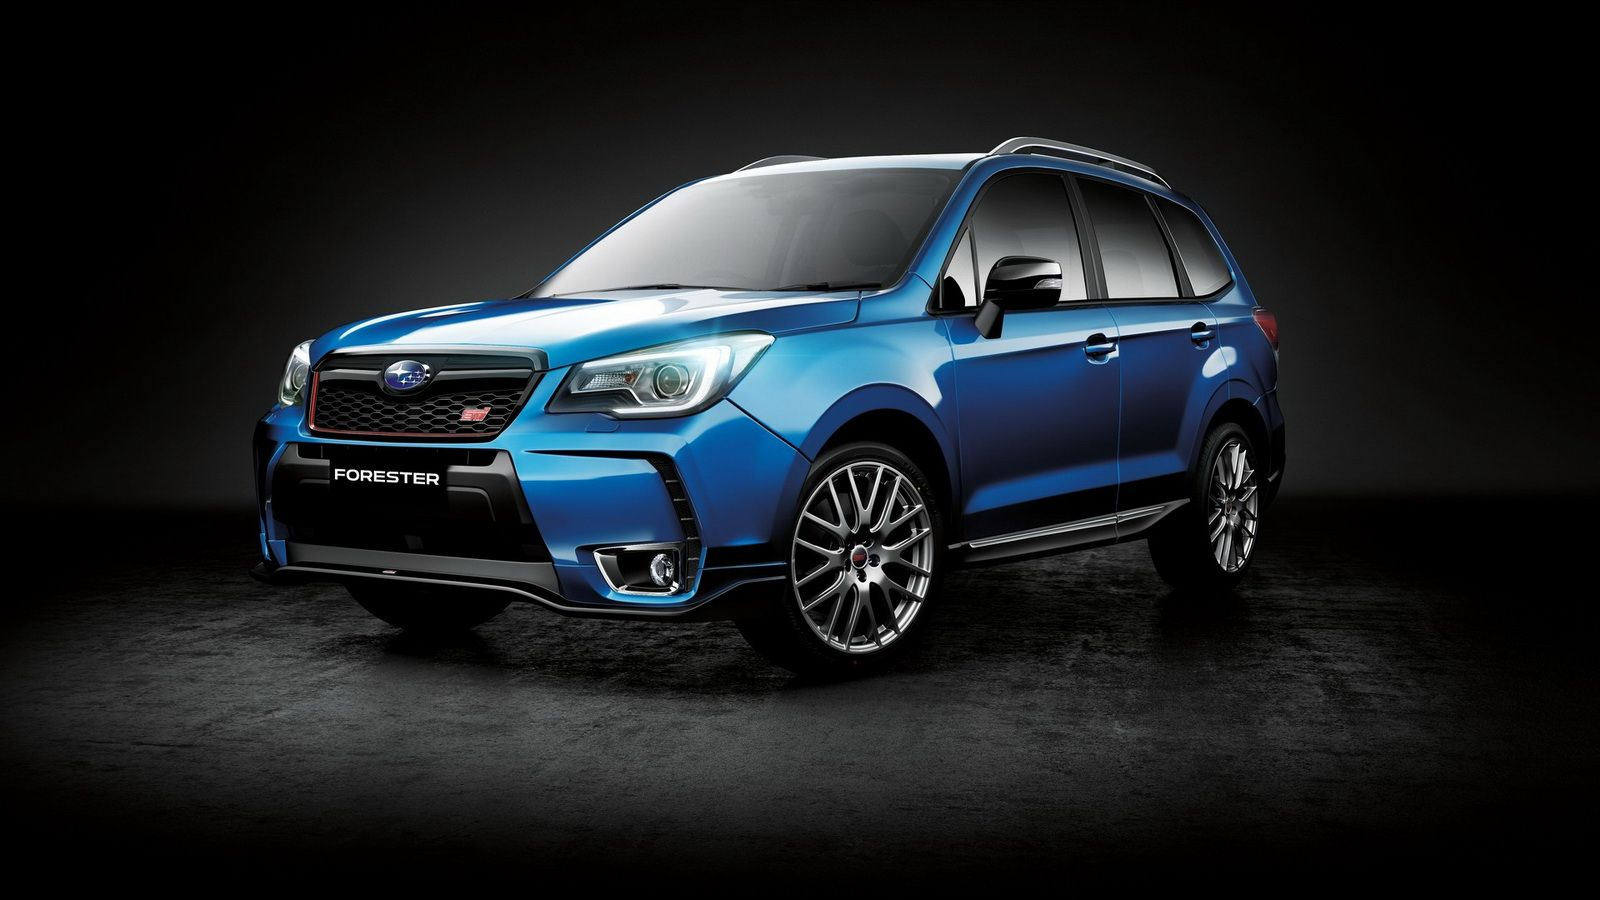 Subaru Forester Ts Special Edition Adds Sti Goodies But It S Only For Australia Carscoops Subaru Forester Subaru Forester Xt Subaru